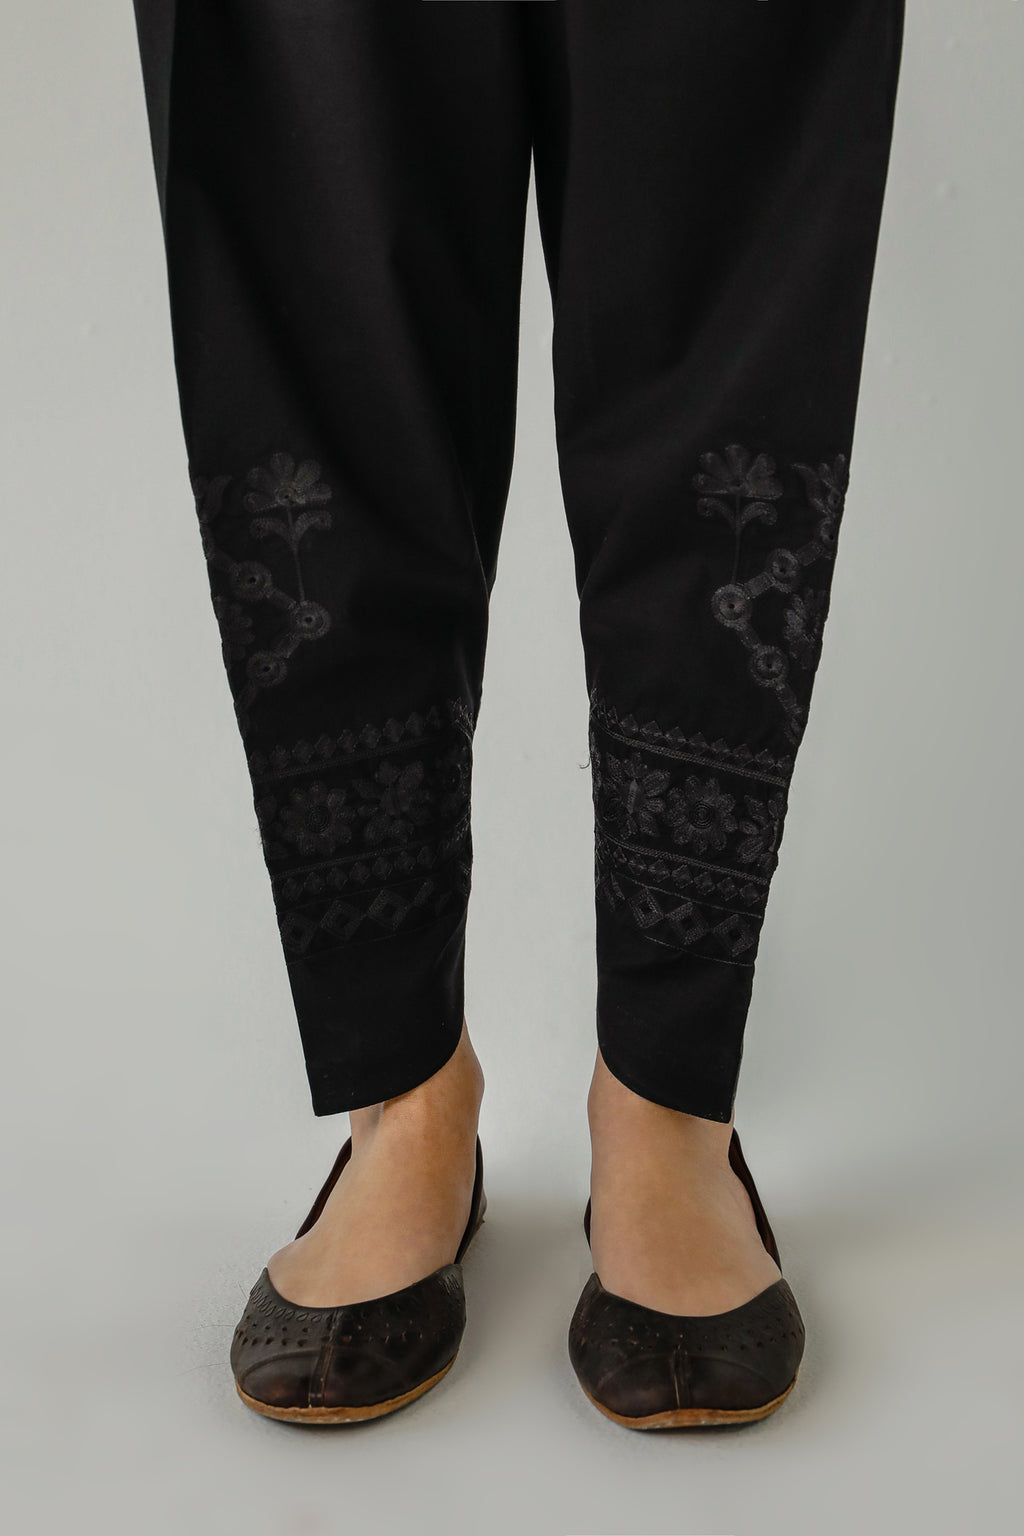 NARROW TULIP (WBP111763) - Ethnic by Outfitters